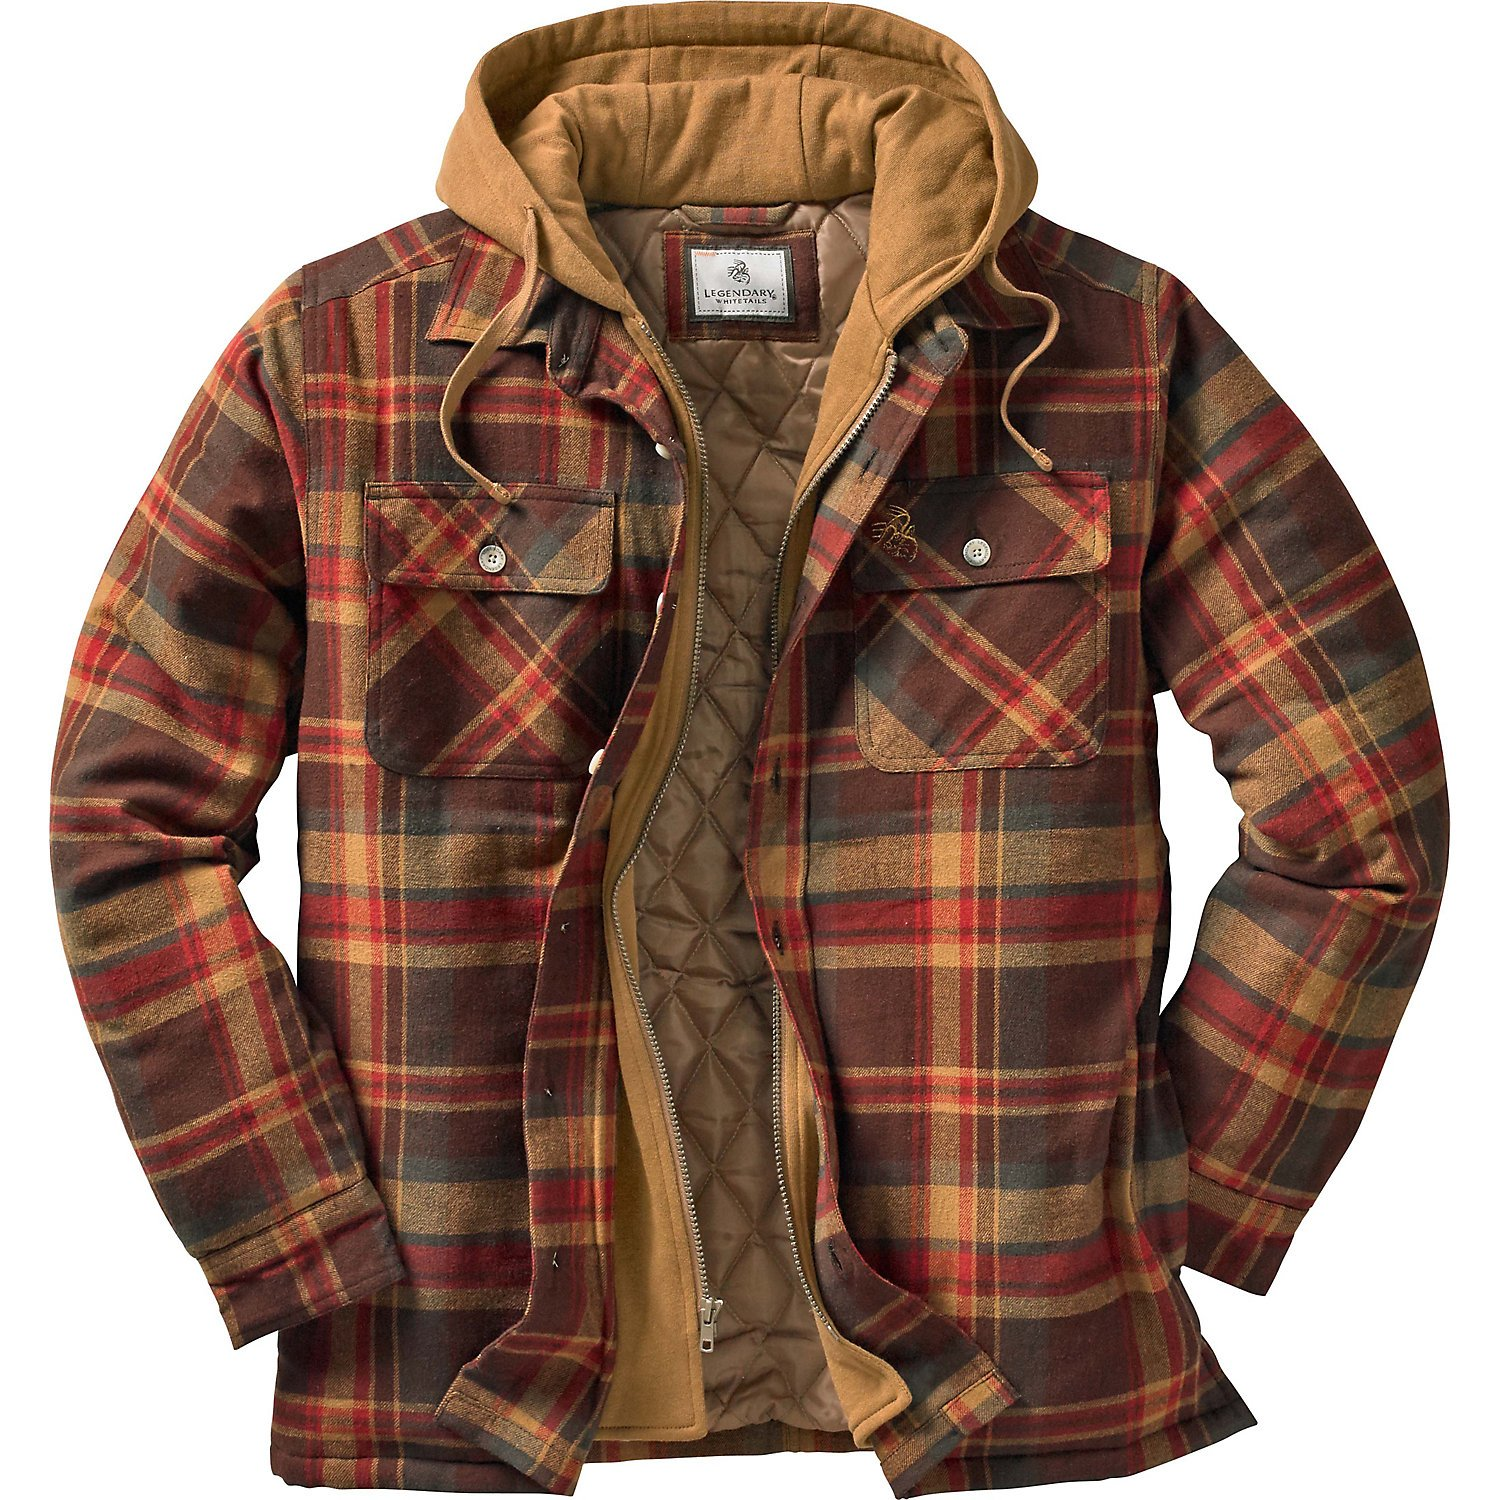 Legendary Whitetails Men's Maplewood Hooded Shirt Jacket (Large Tall, Maplewood Brown Plaid) 6575 MWPL LT